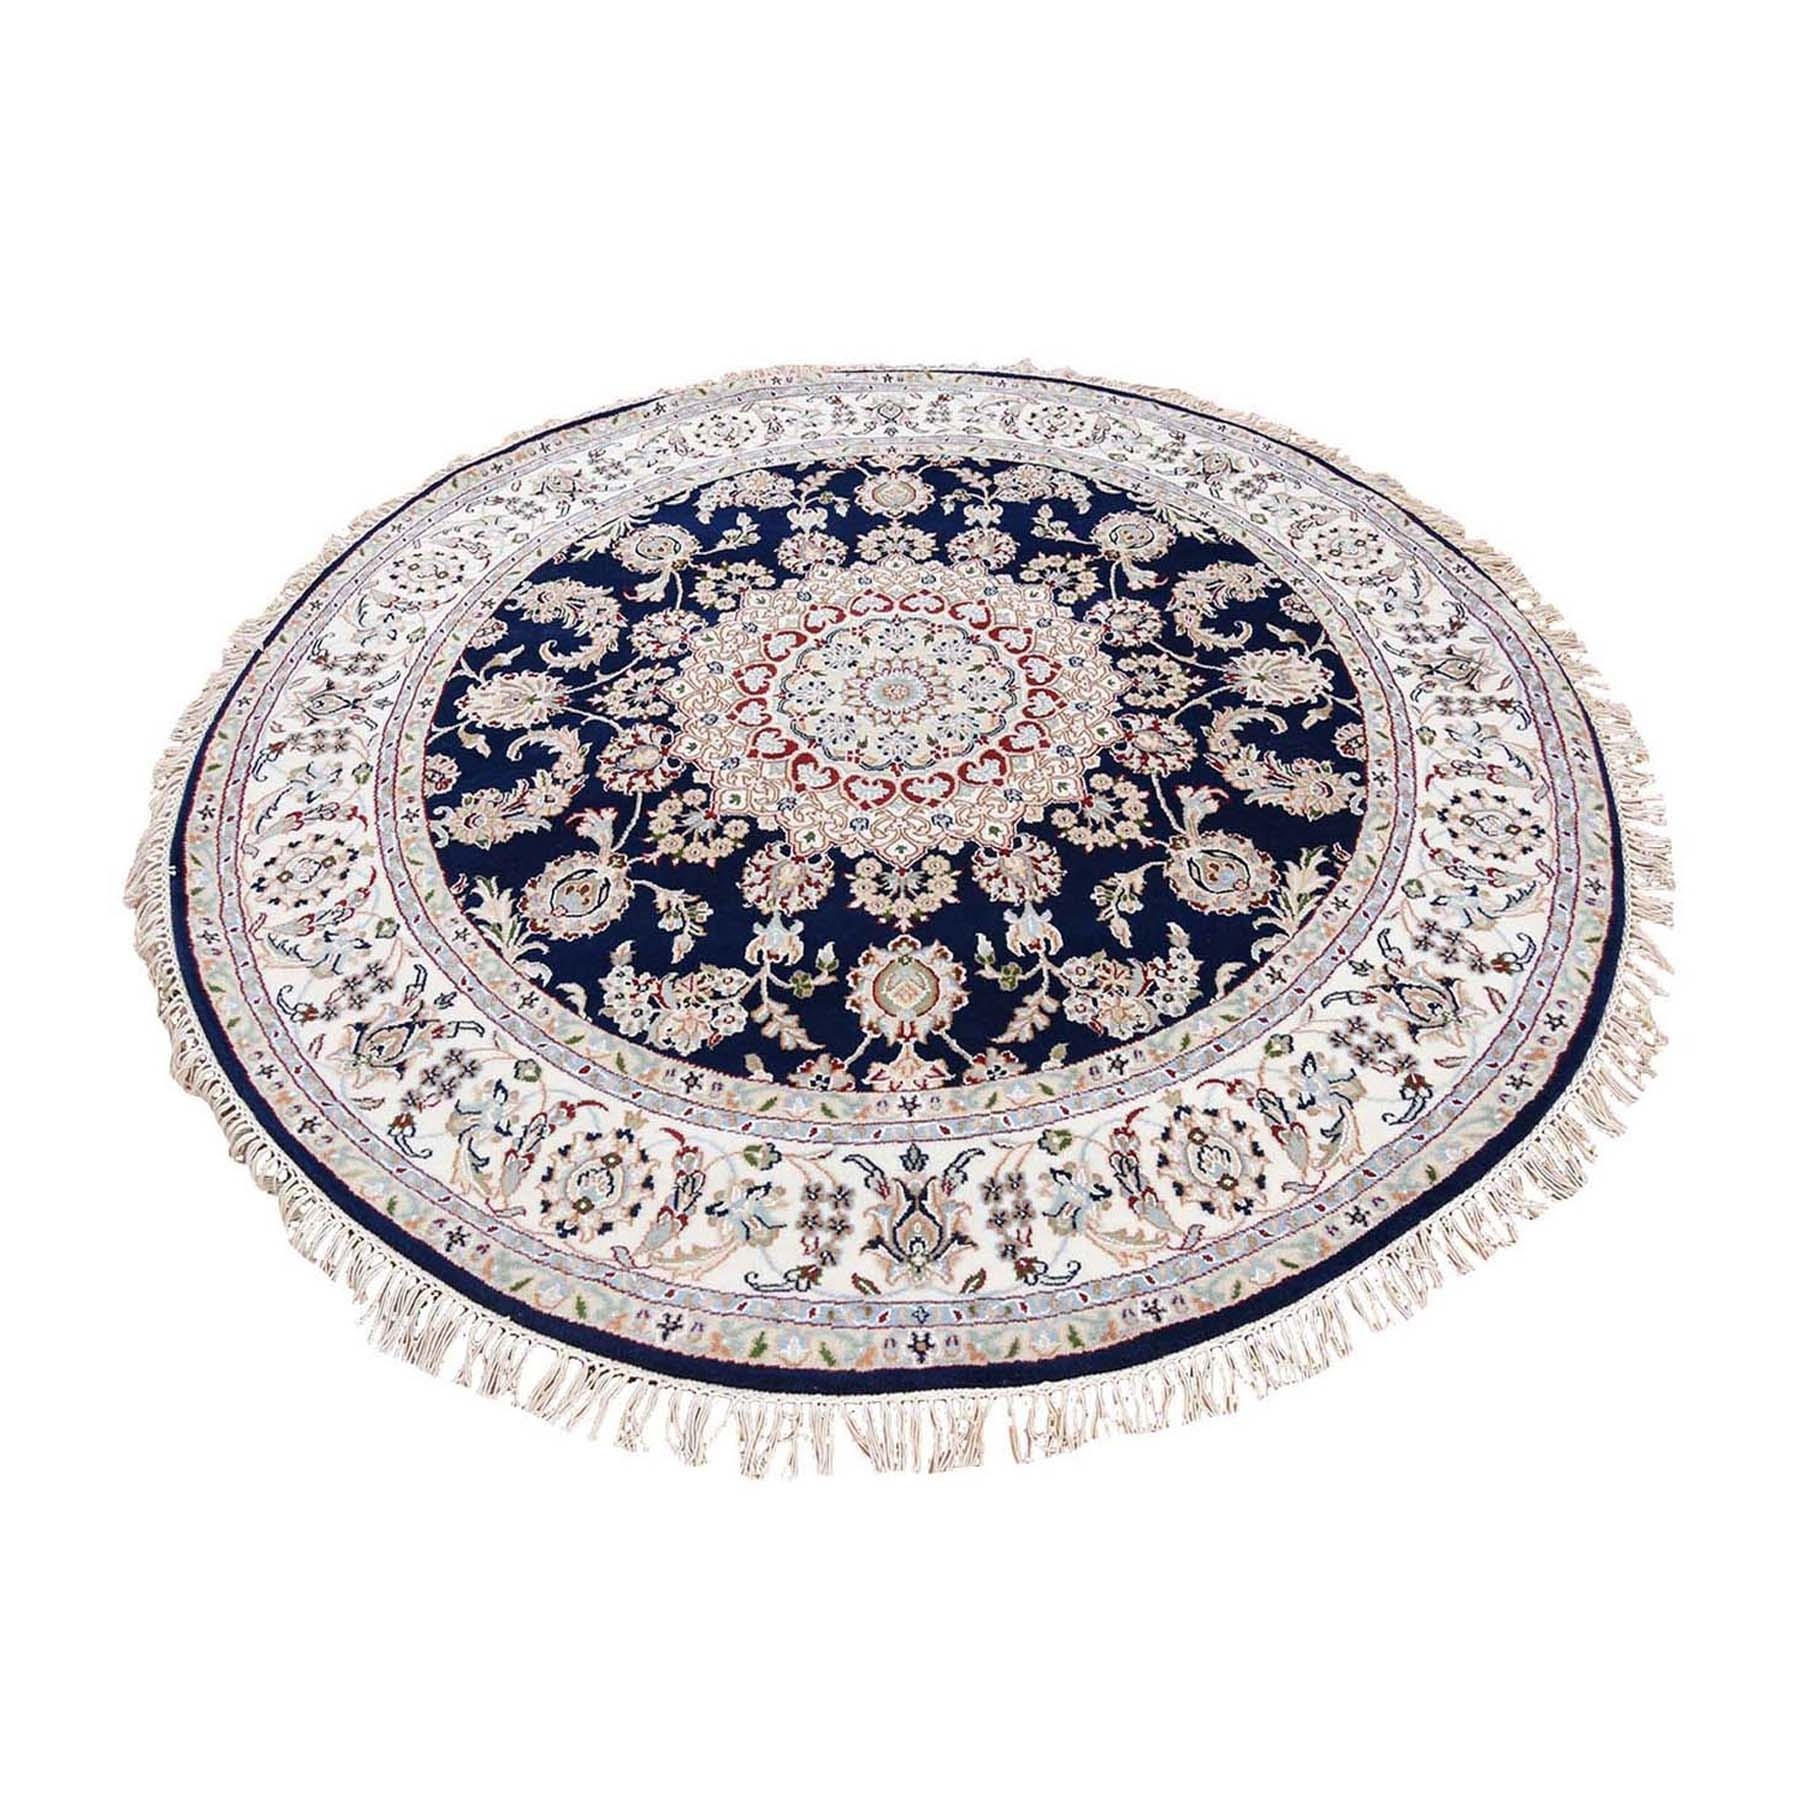 Pirniakan Collection Hand Knotted Blue Rug No: 1119980